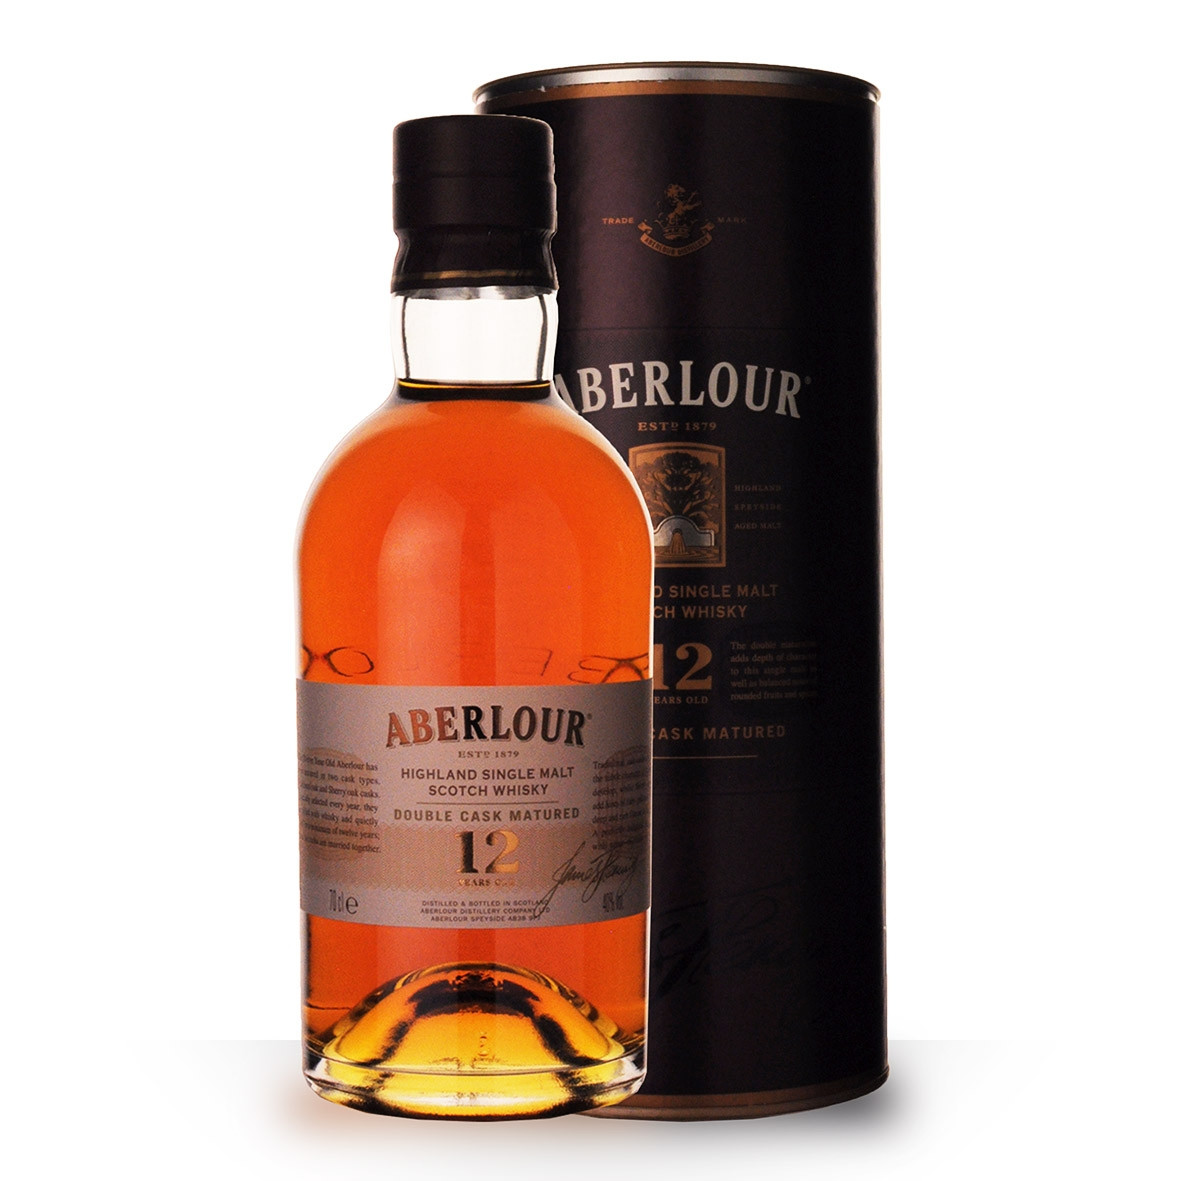 Whisky Aberlour 12 ans Double Cask Matured 70cl Coffret www.odyssee-vins.com